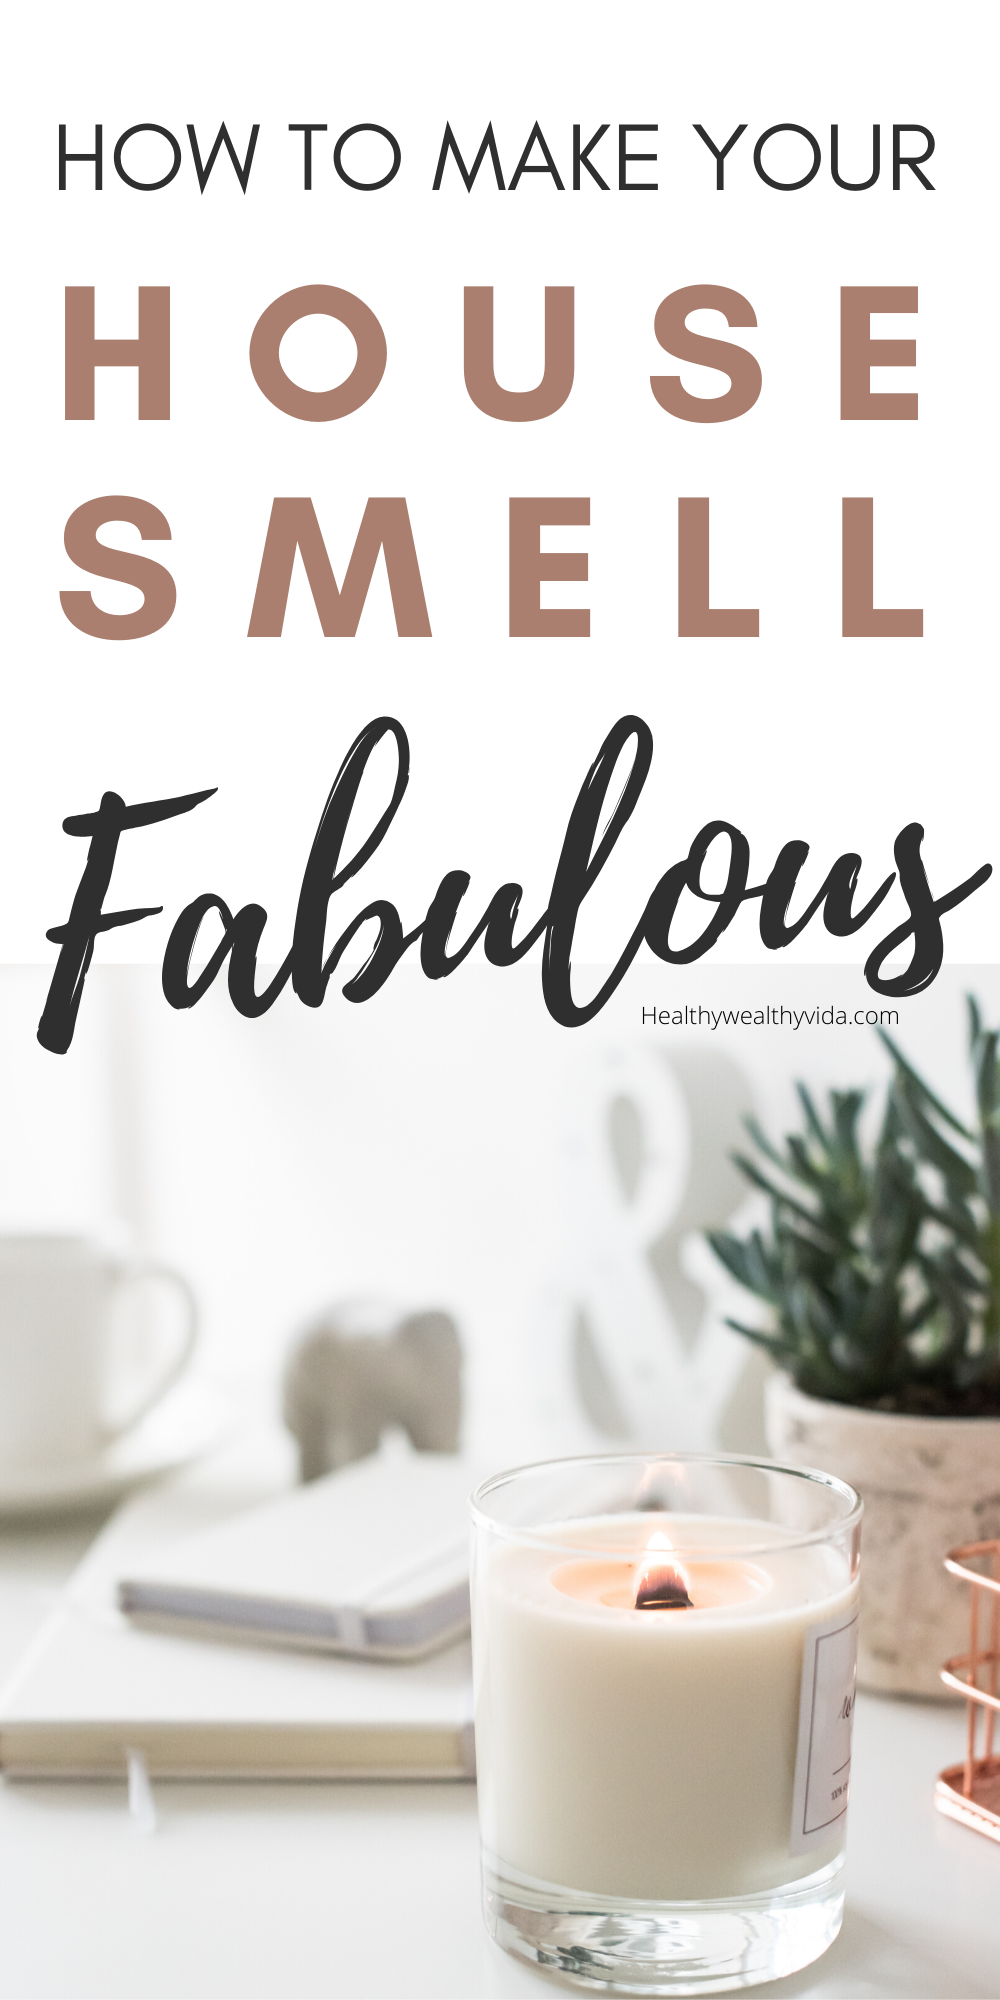 How to Make Your Home Smell Insanely Good House smell